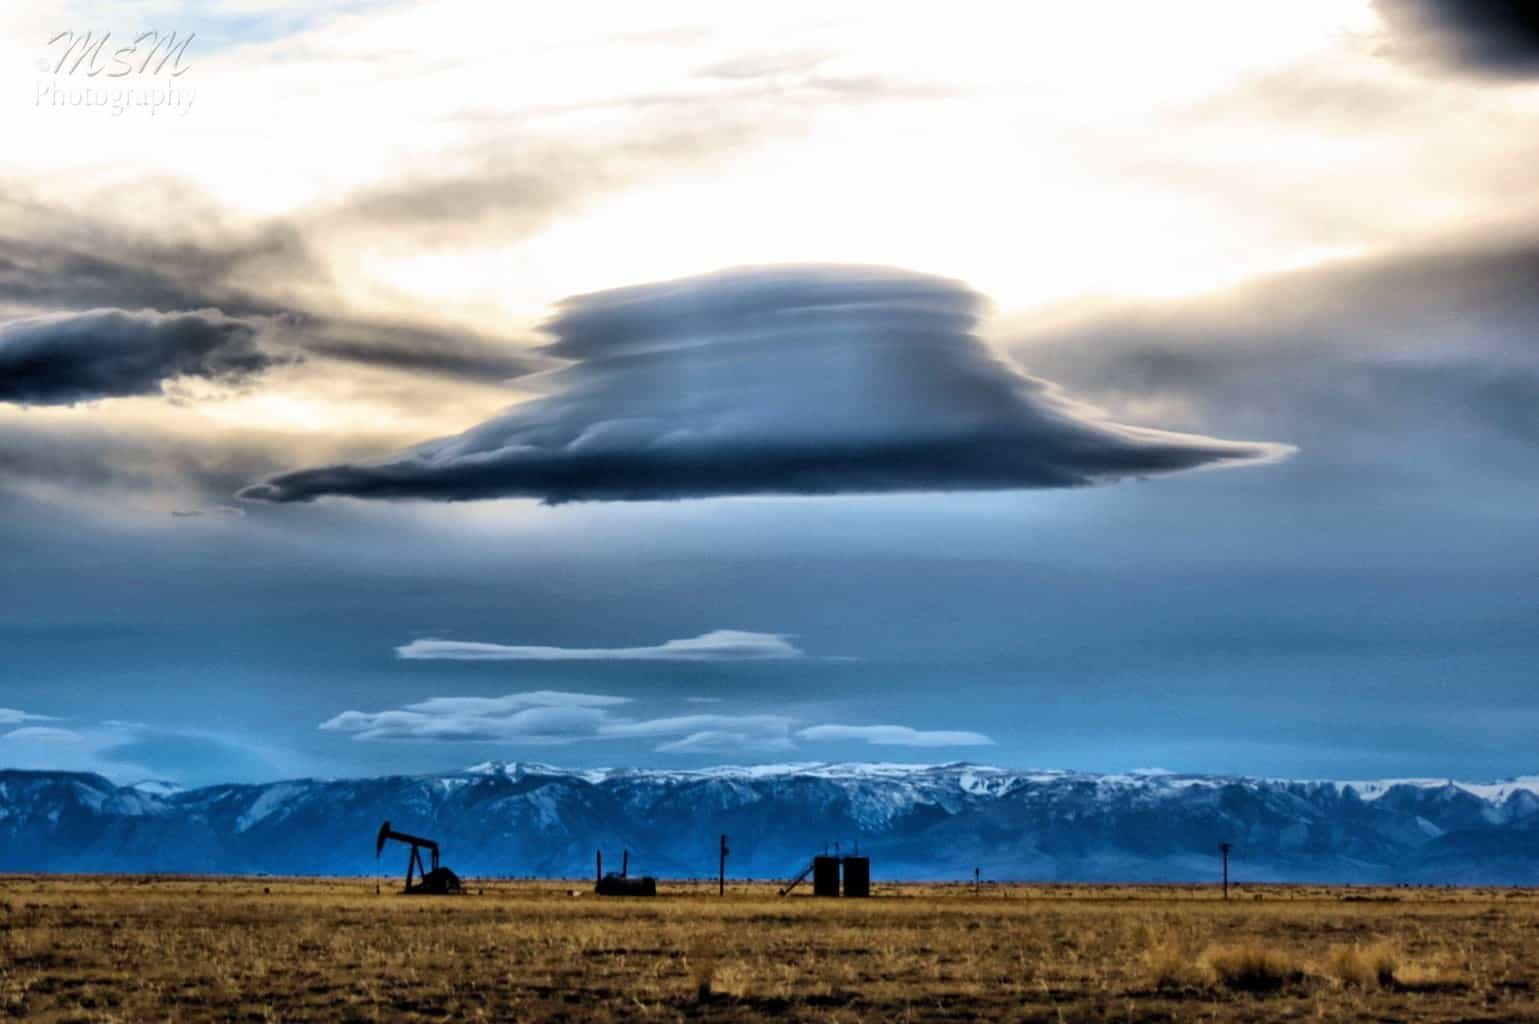 Unique looking lenticular cloud hovering over some of Wyoming's natural resources. Makes you wonder what is inside that cloud  Taken in March of 2015 north of Powell, WY.